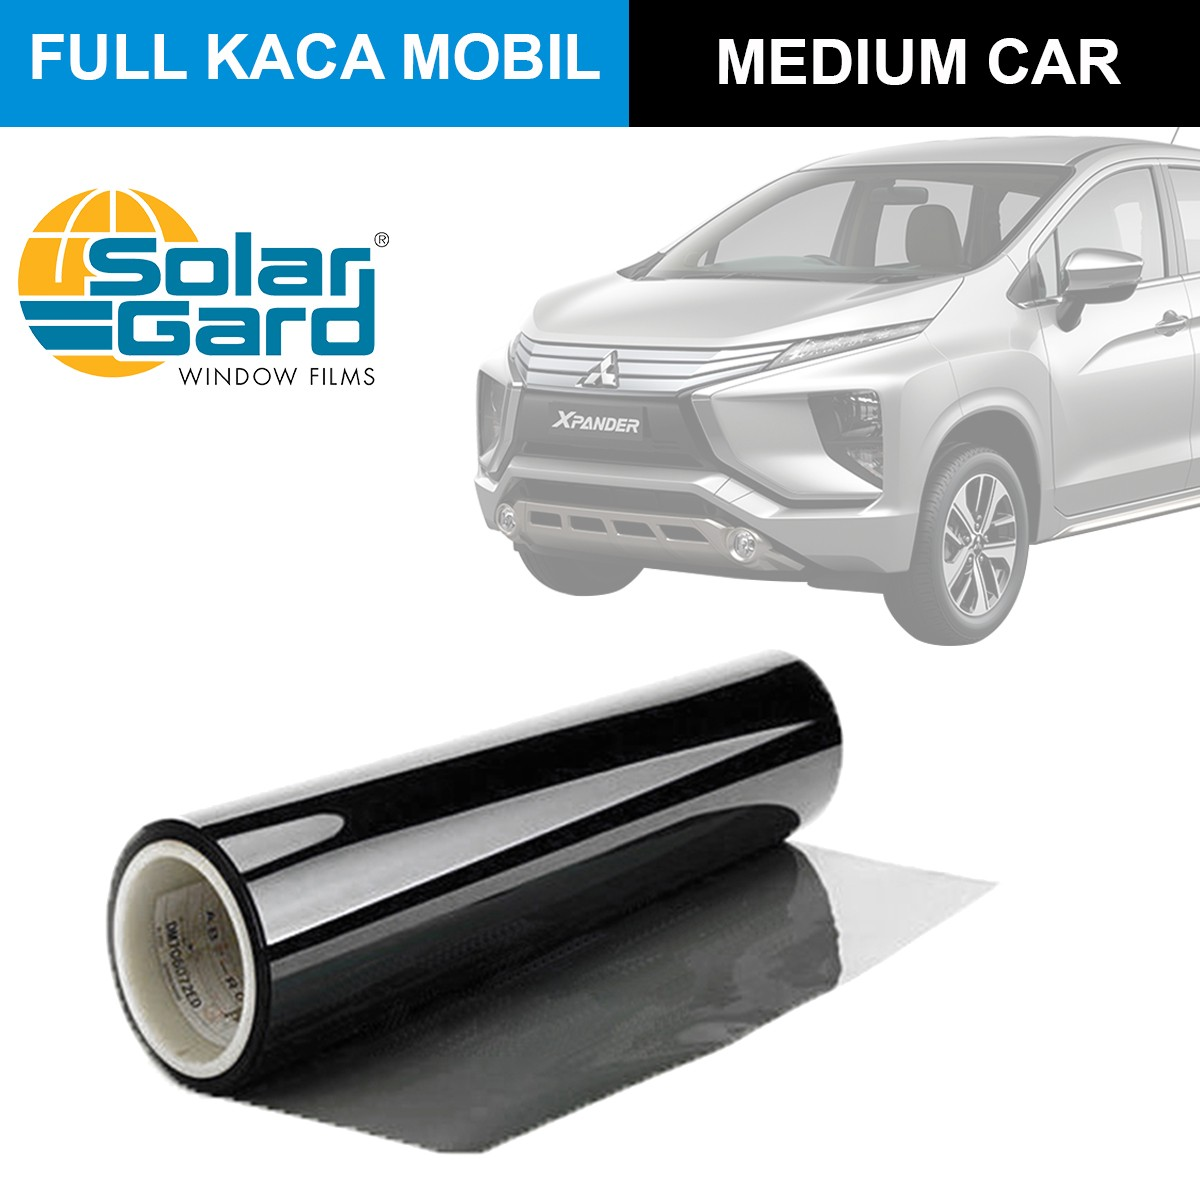 KACA FILM SOLAR GARD BEST PERFORMANCE - (MEDIUM CAR) FULL KACA